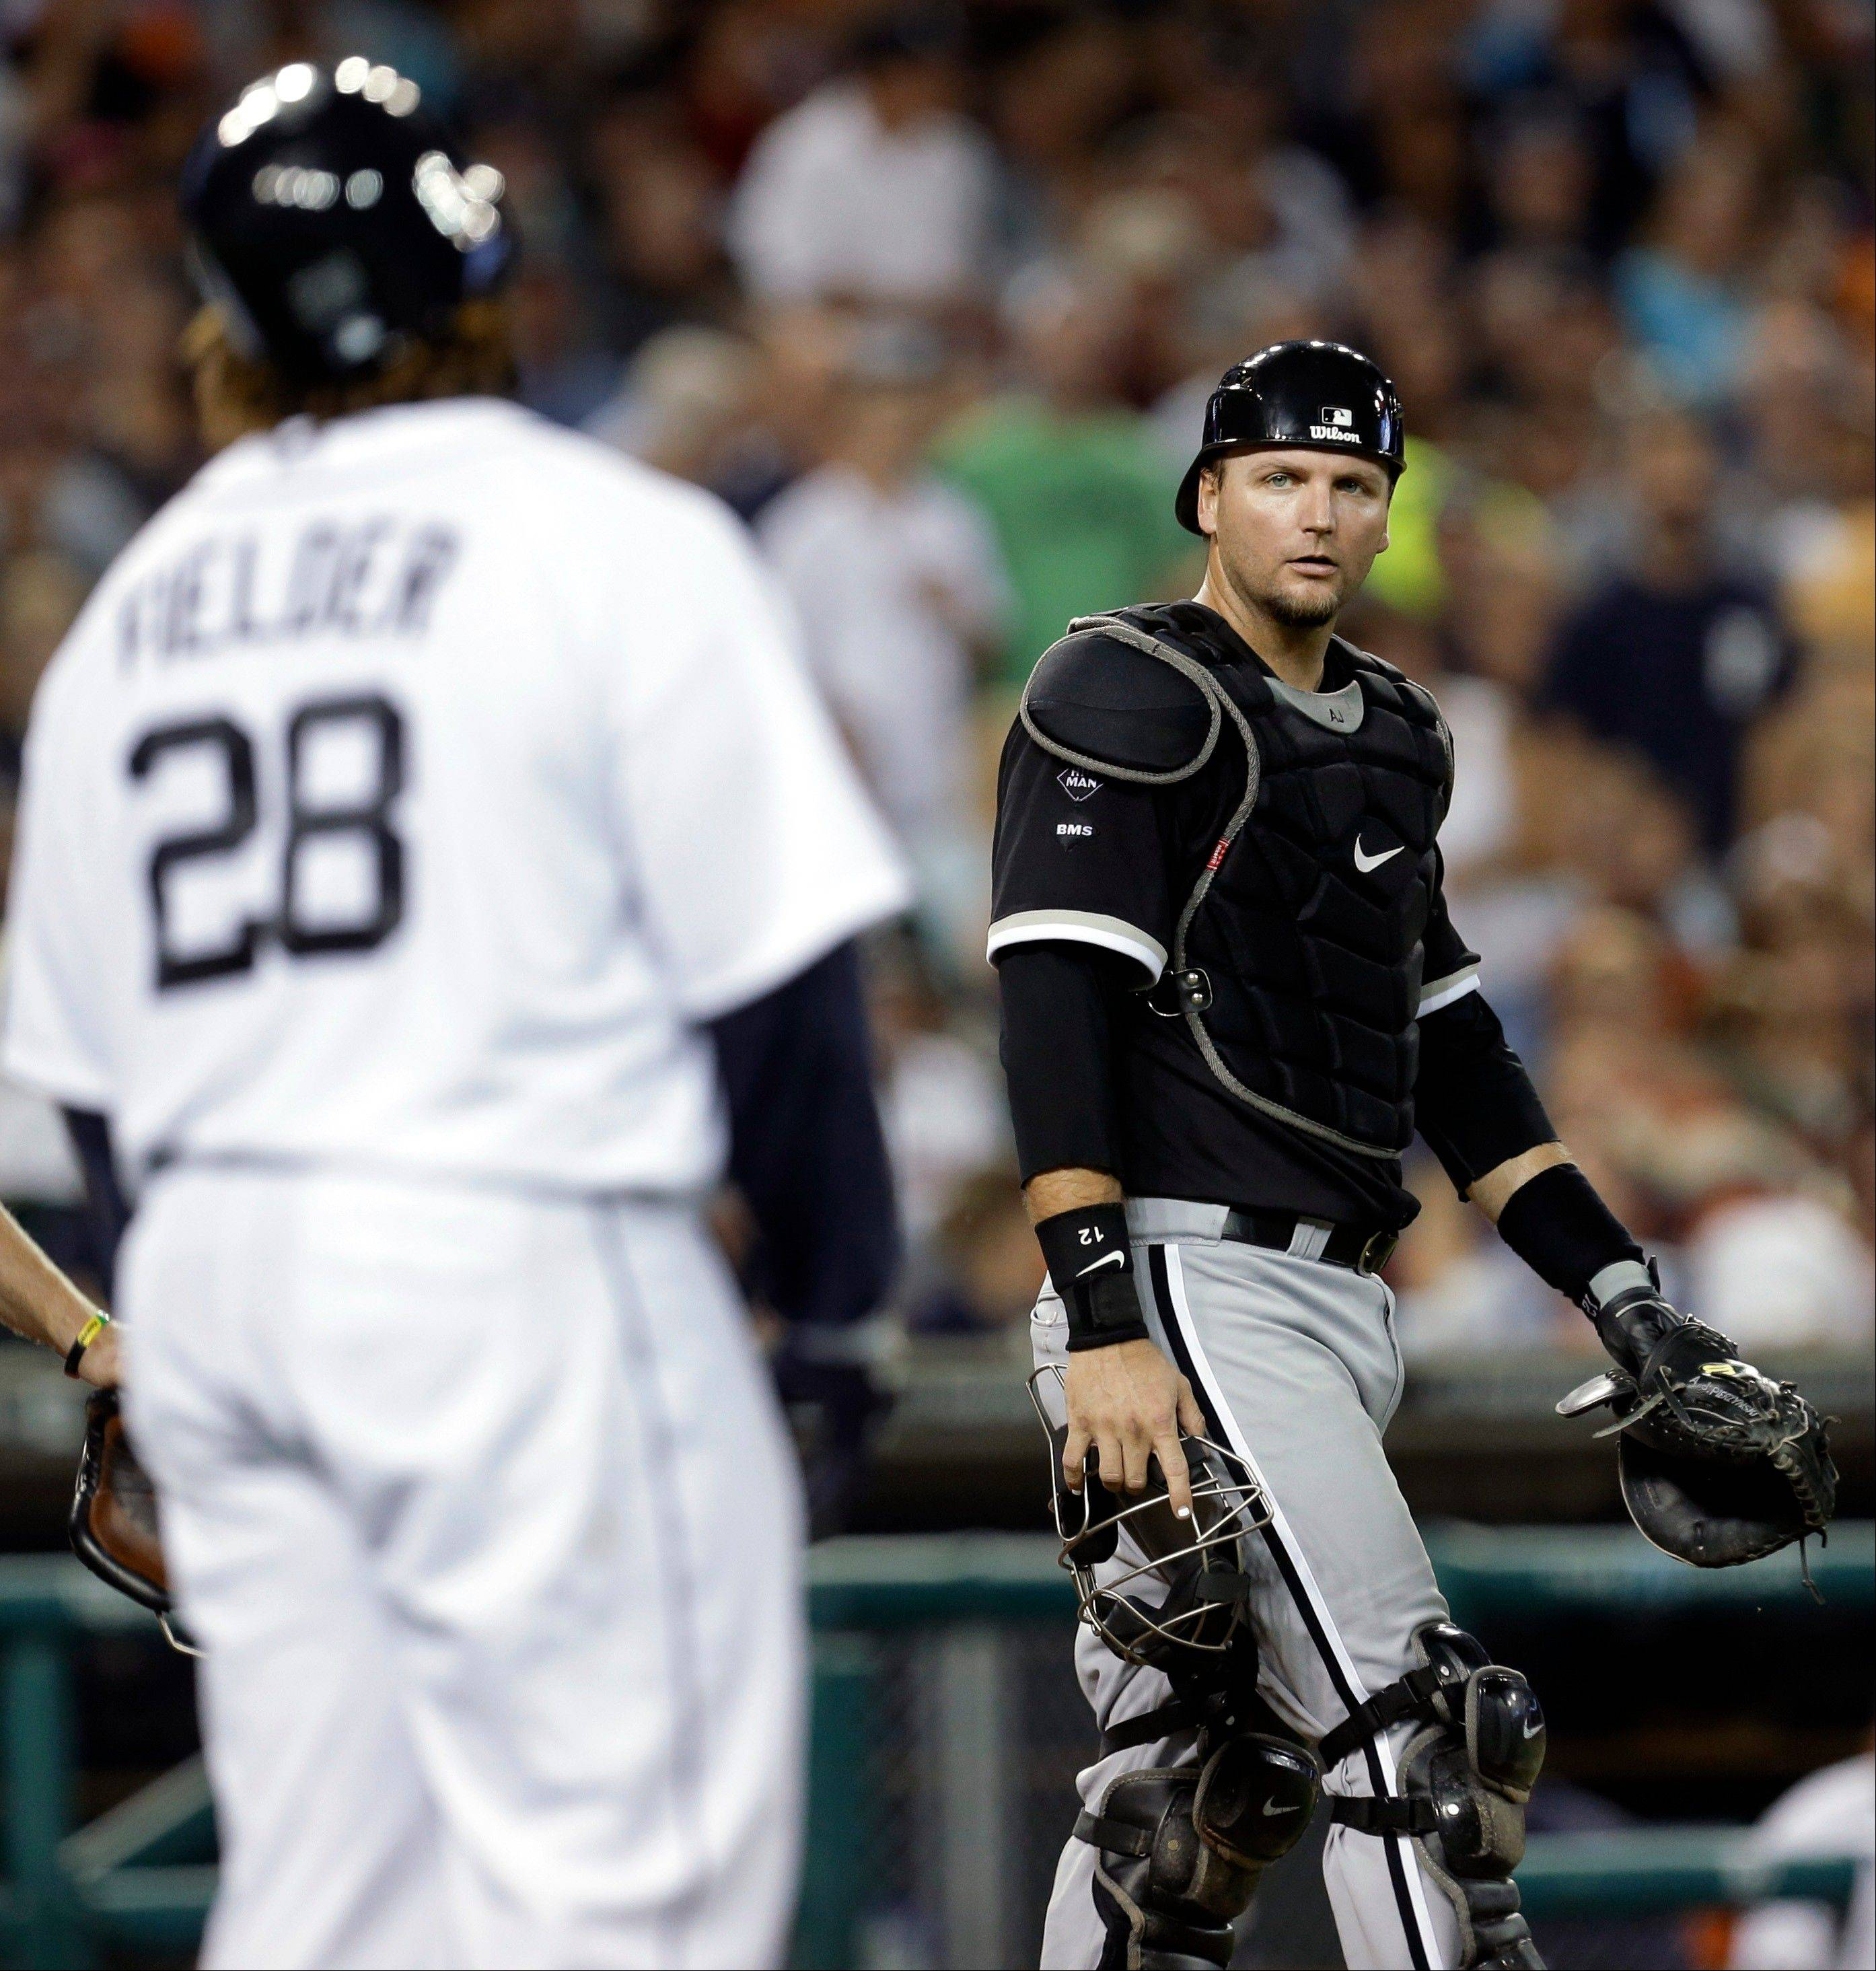 Detroit Tigers' Prince Fielder (28) talks with Chicago White Sox catcher A.J. Pierzynski, left, after being hit by a pitch from Matt Thornton in the seventh inning of a baseball game in Detroit, Friday, Aug. 31, 2012. (AP Photo/Paul Sancya)